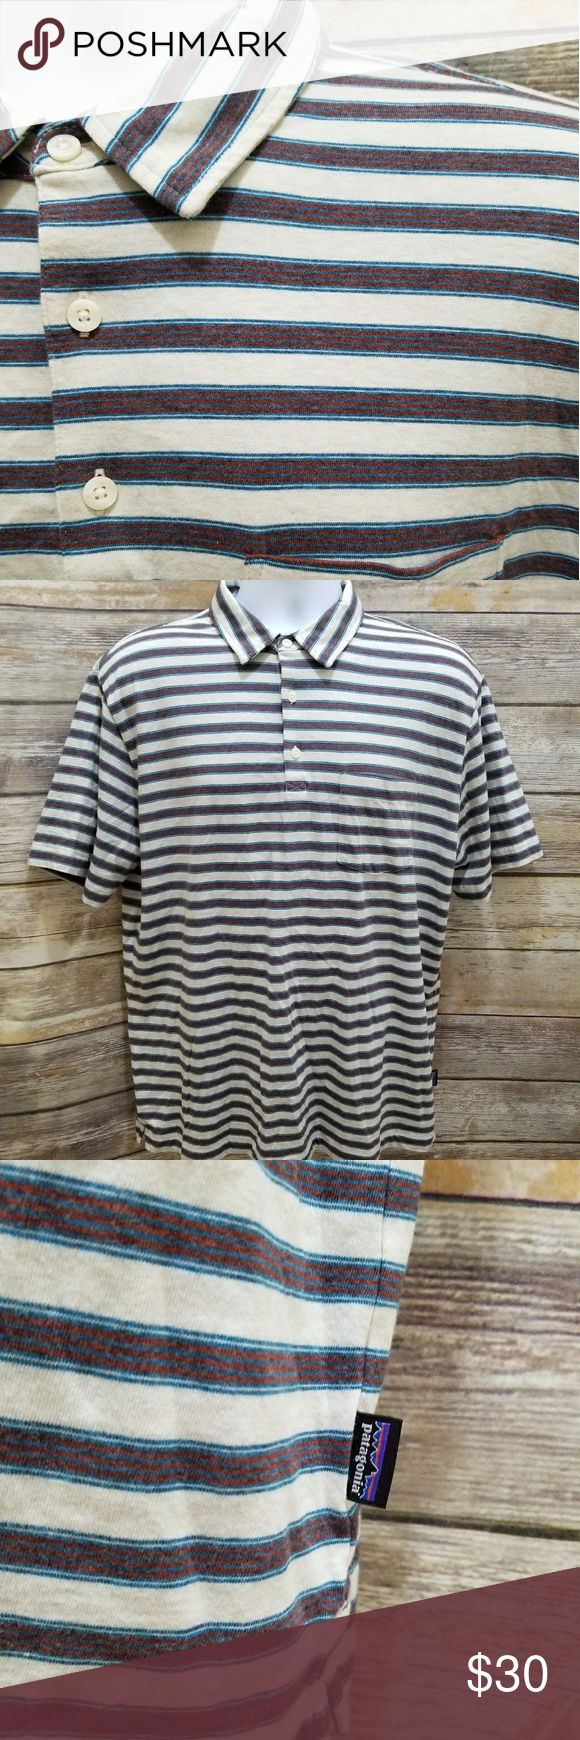 "Patagonia Mens striped collar pullover polo shirt EUC, cream, blue and deep red stripe collared pullover polo shirt. Mens size L.   Measurements: (approximate flat lay) Armpit to armpit: 22 1/2"" Shoulder to bottom hem: 28"" Patagonia Shirts Polos"